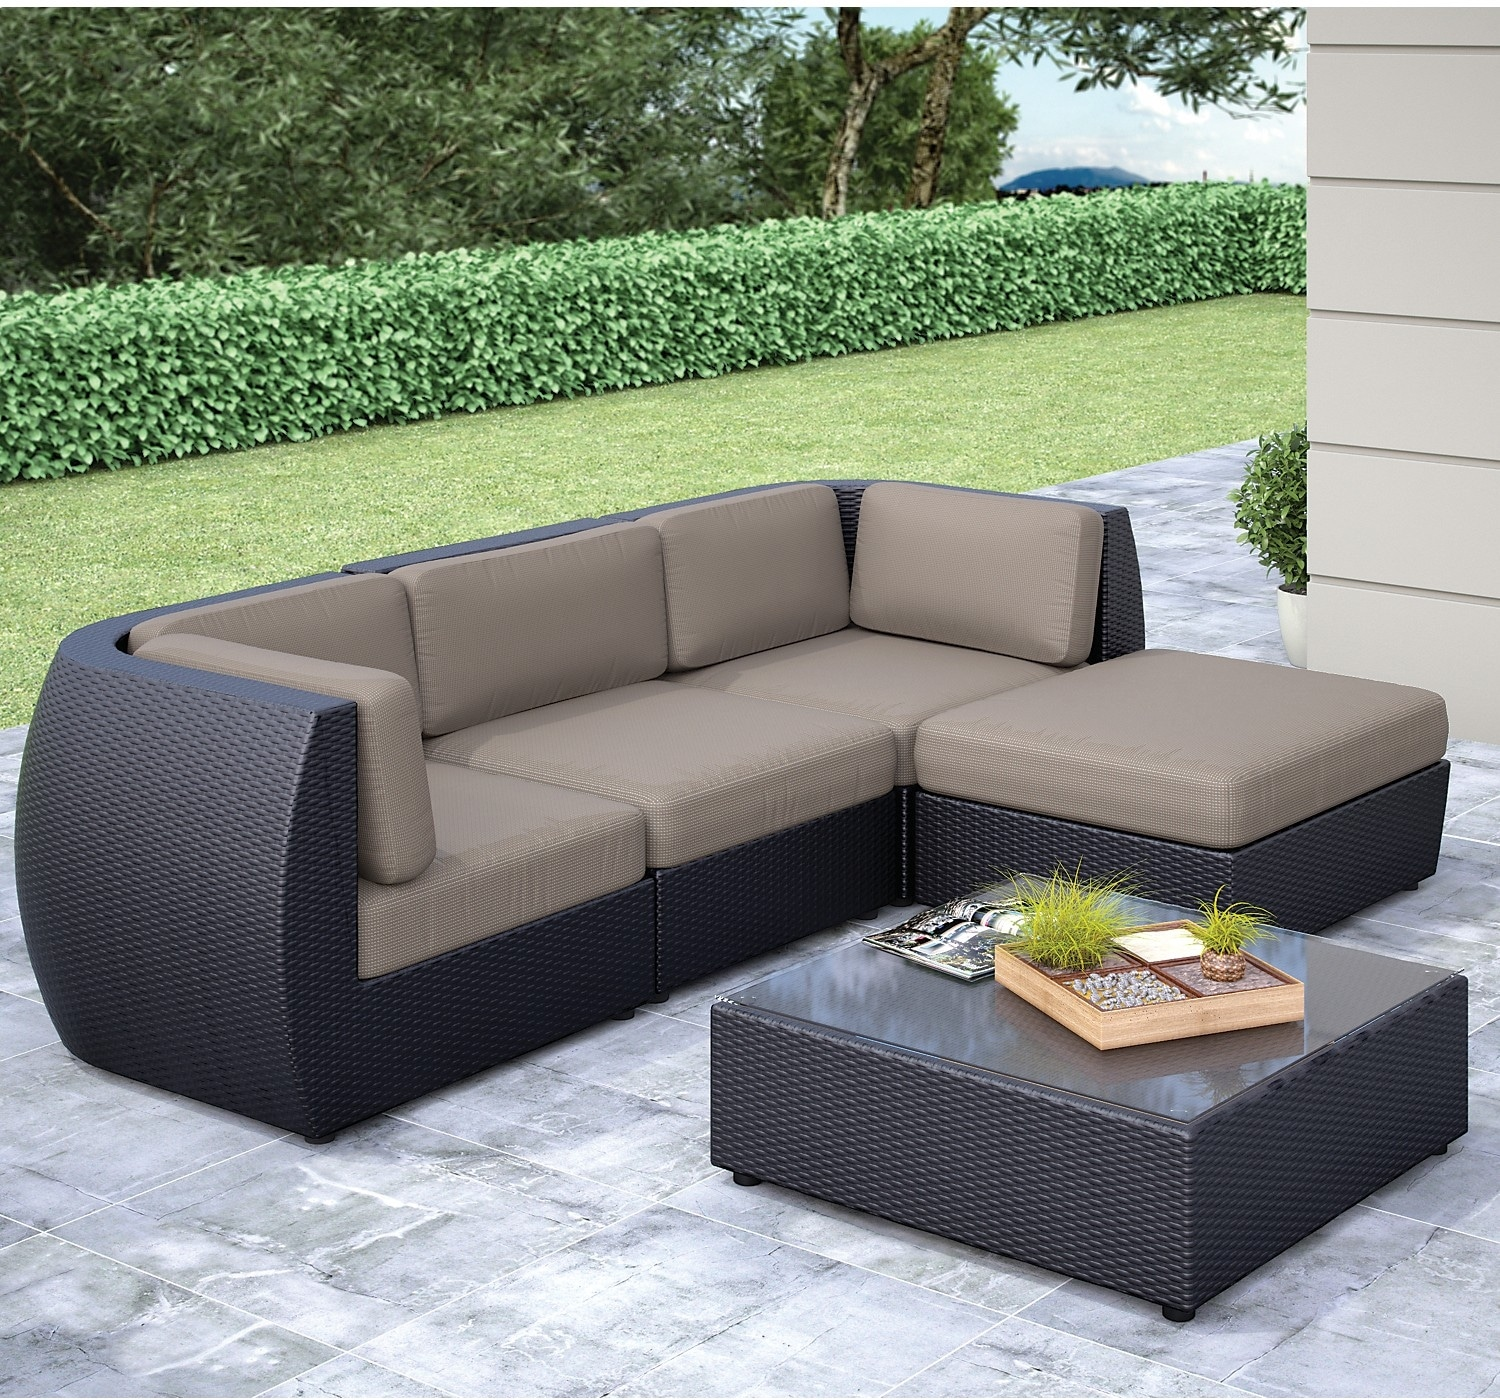 seattle sofa ottoman and table set the brick